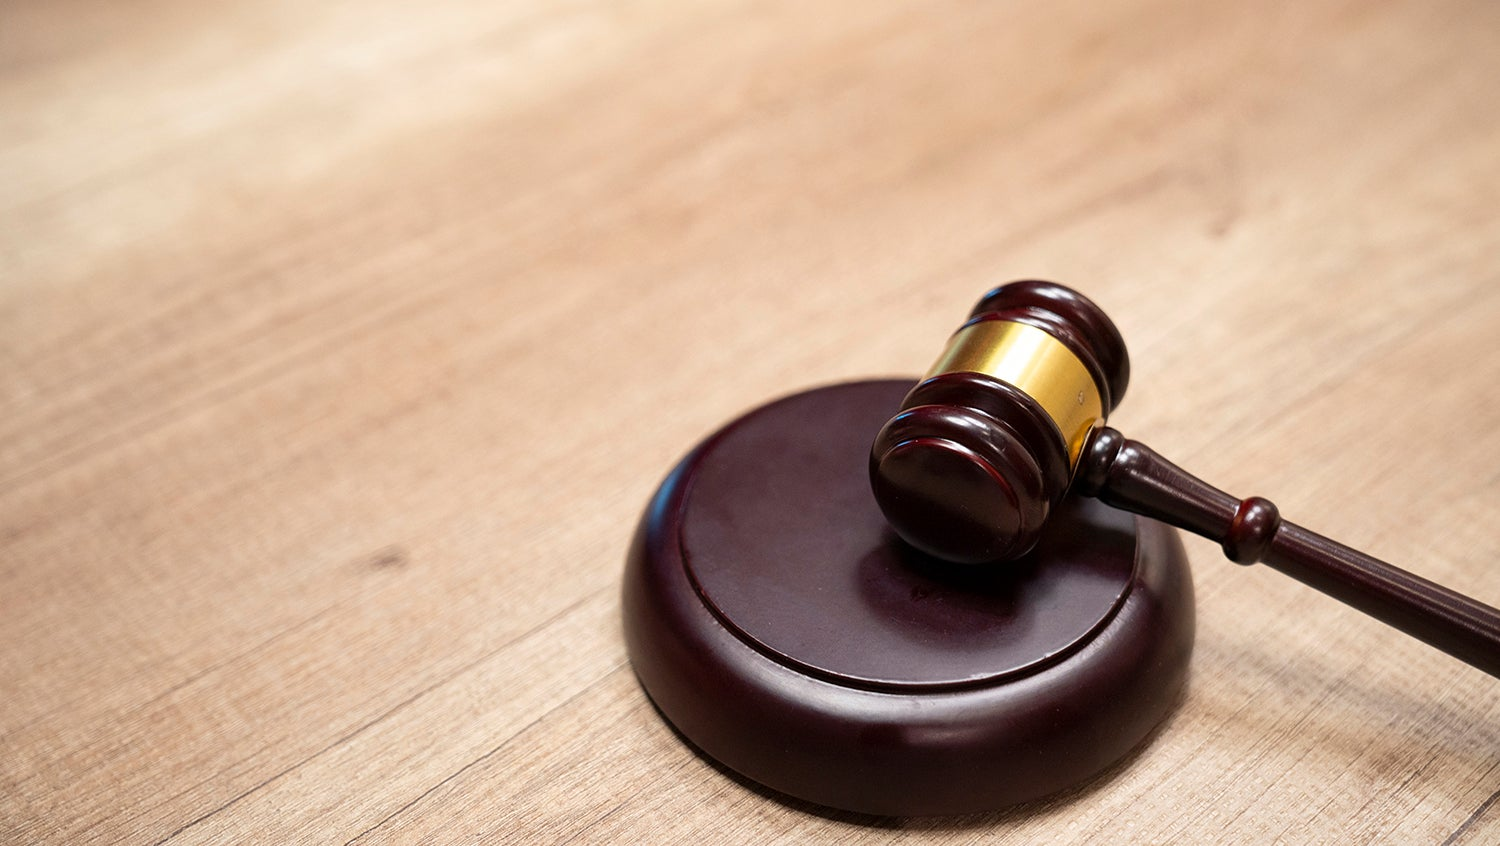 a judge's gavel sits on a table